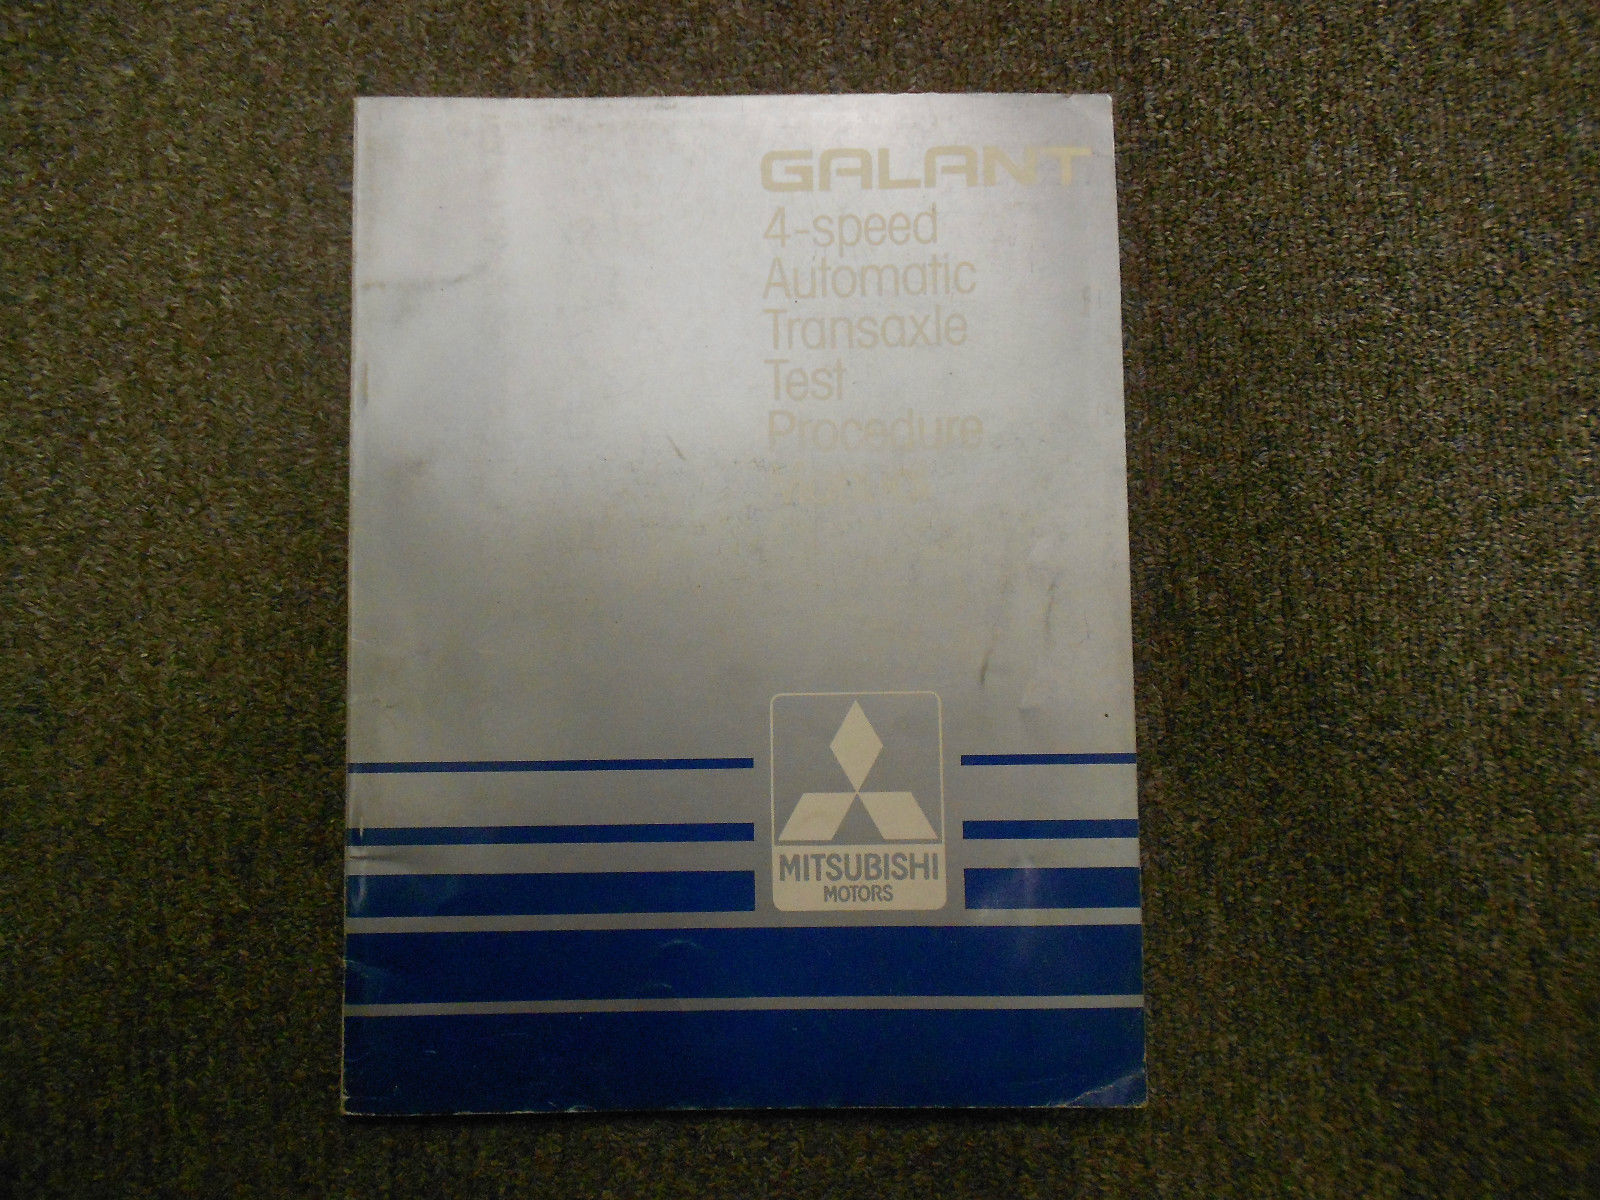 1987 MITSUBISHI Galant 4 Speed Automatic Transaxle Test Procedure Service Manual - $15.78